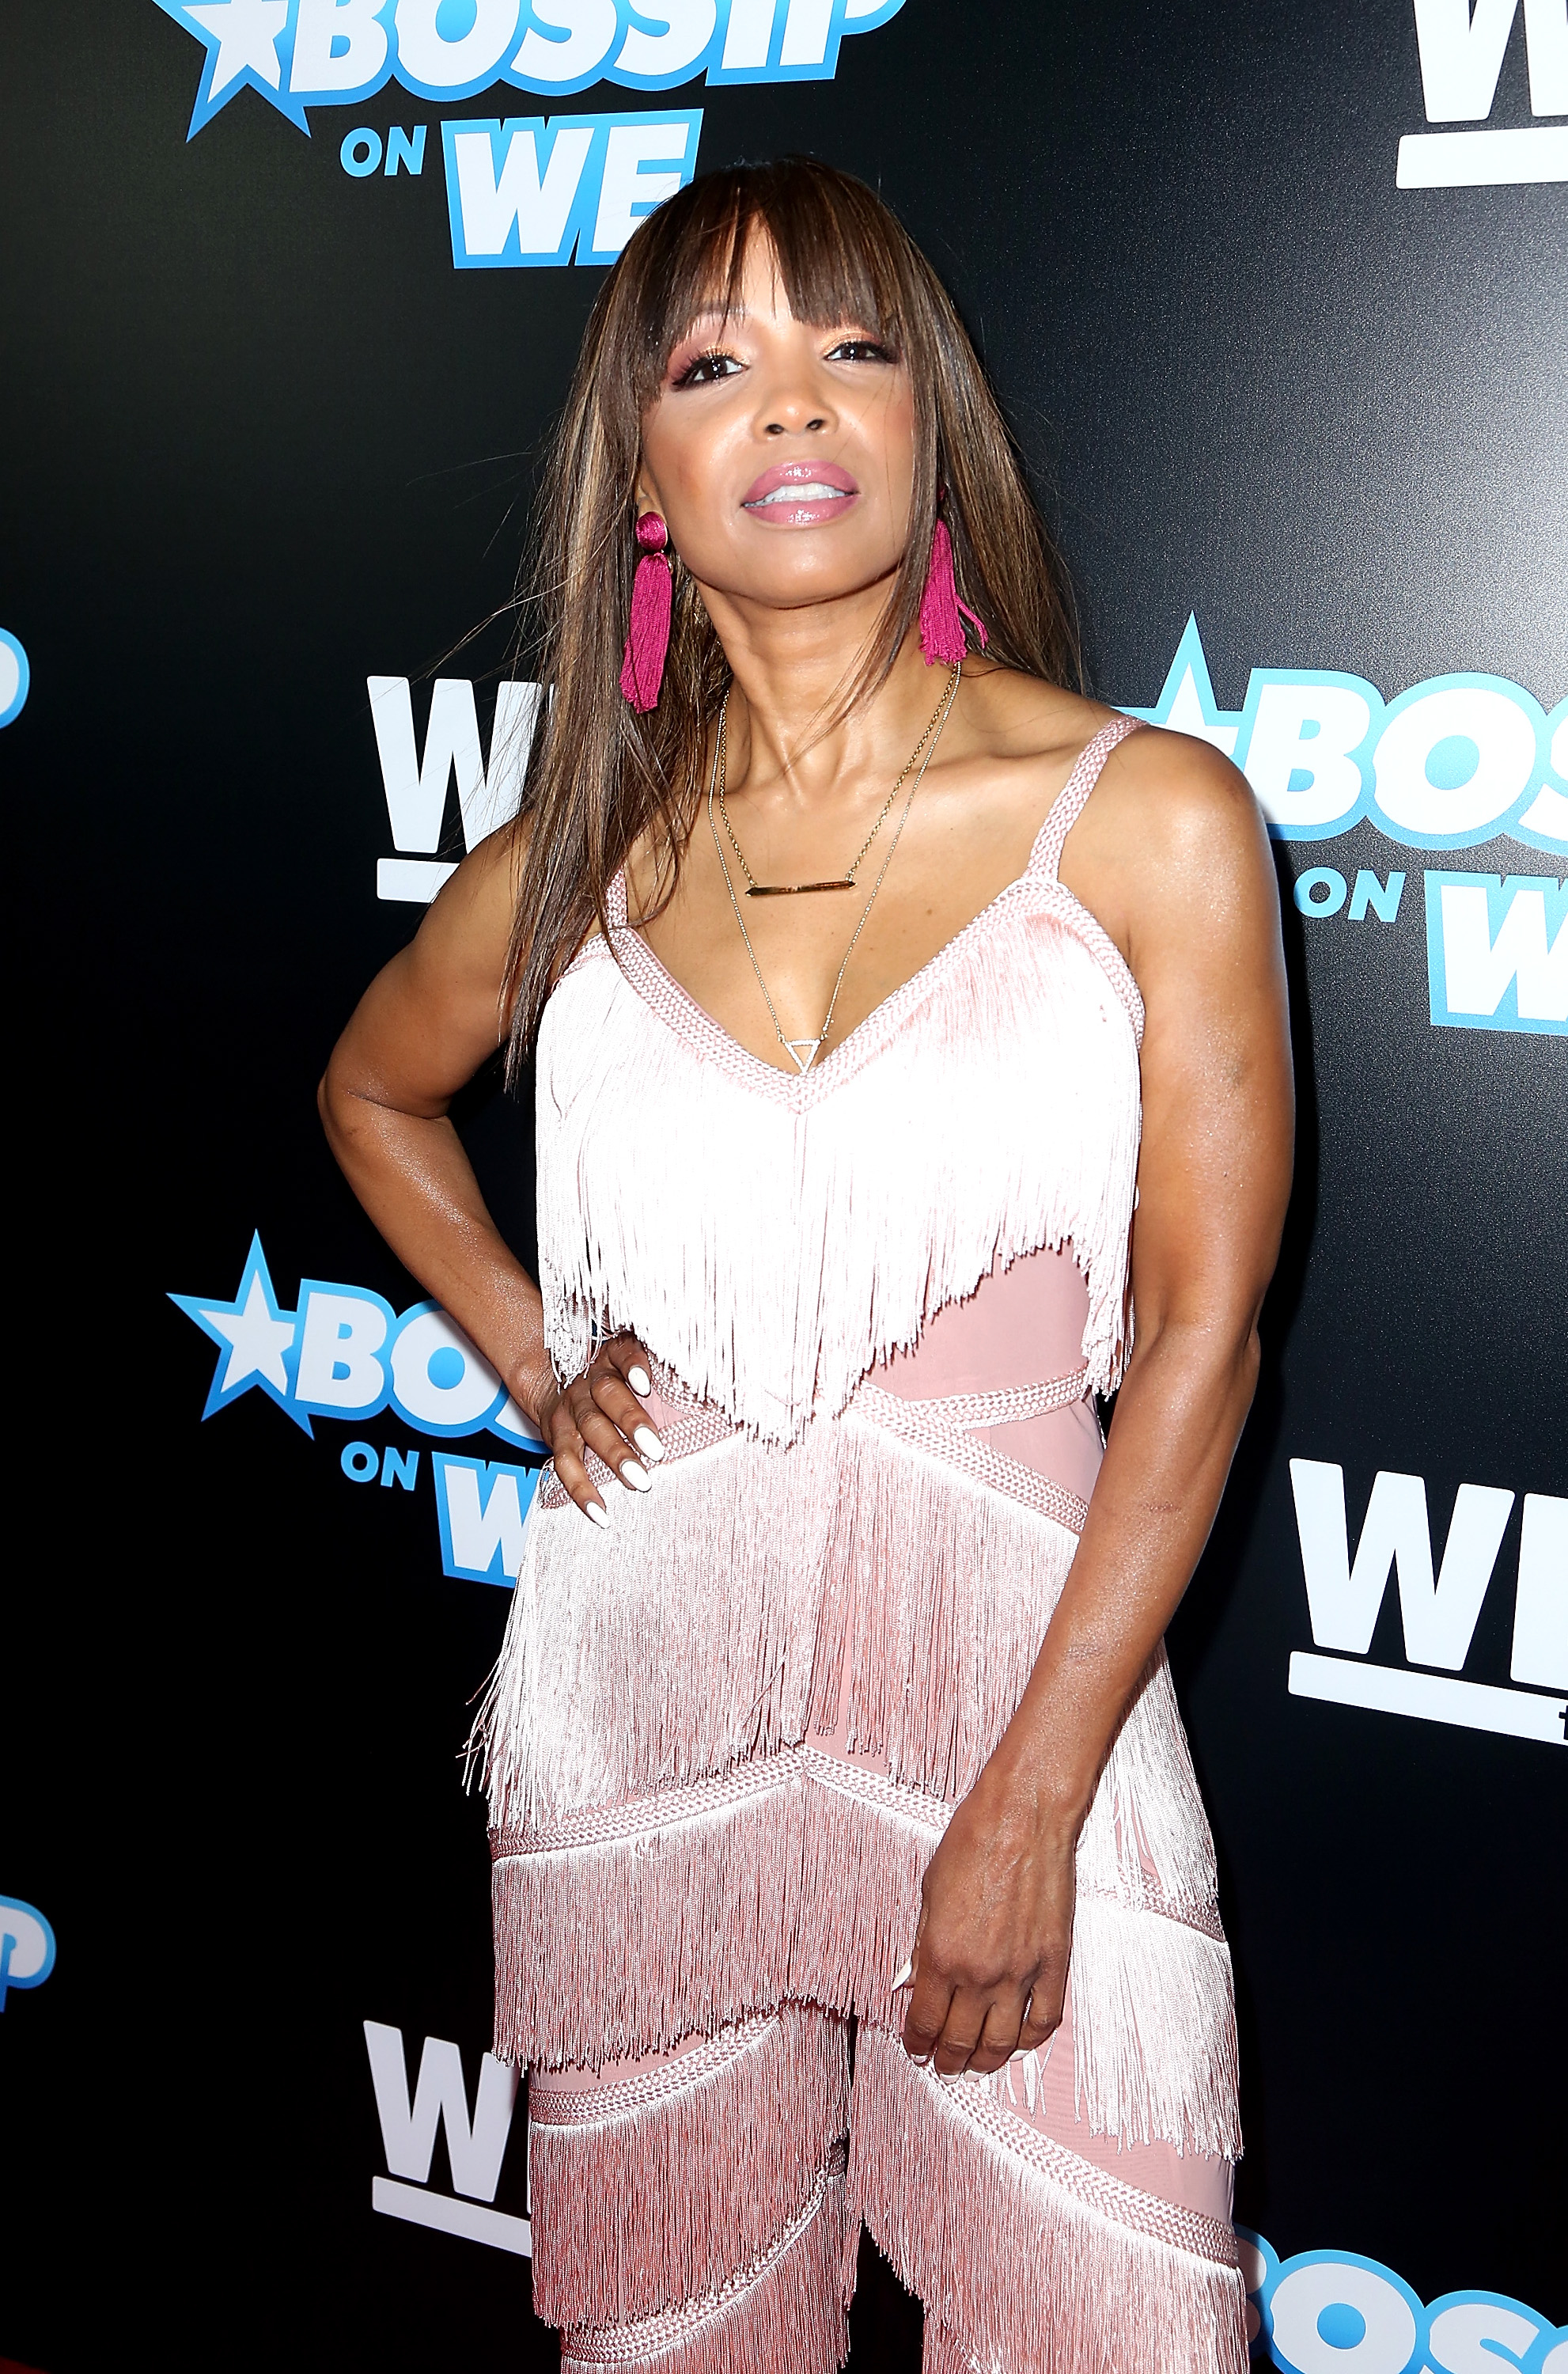 LOS ANGELES, CA - JULY 31: Elise Neal attends Bossip Best Dressed List Event on July 31, 2018 in Los Angeles, California. (Photo by Maury Phillips/Getty Images for WE tv )